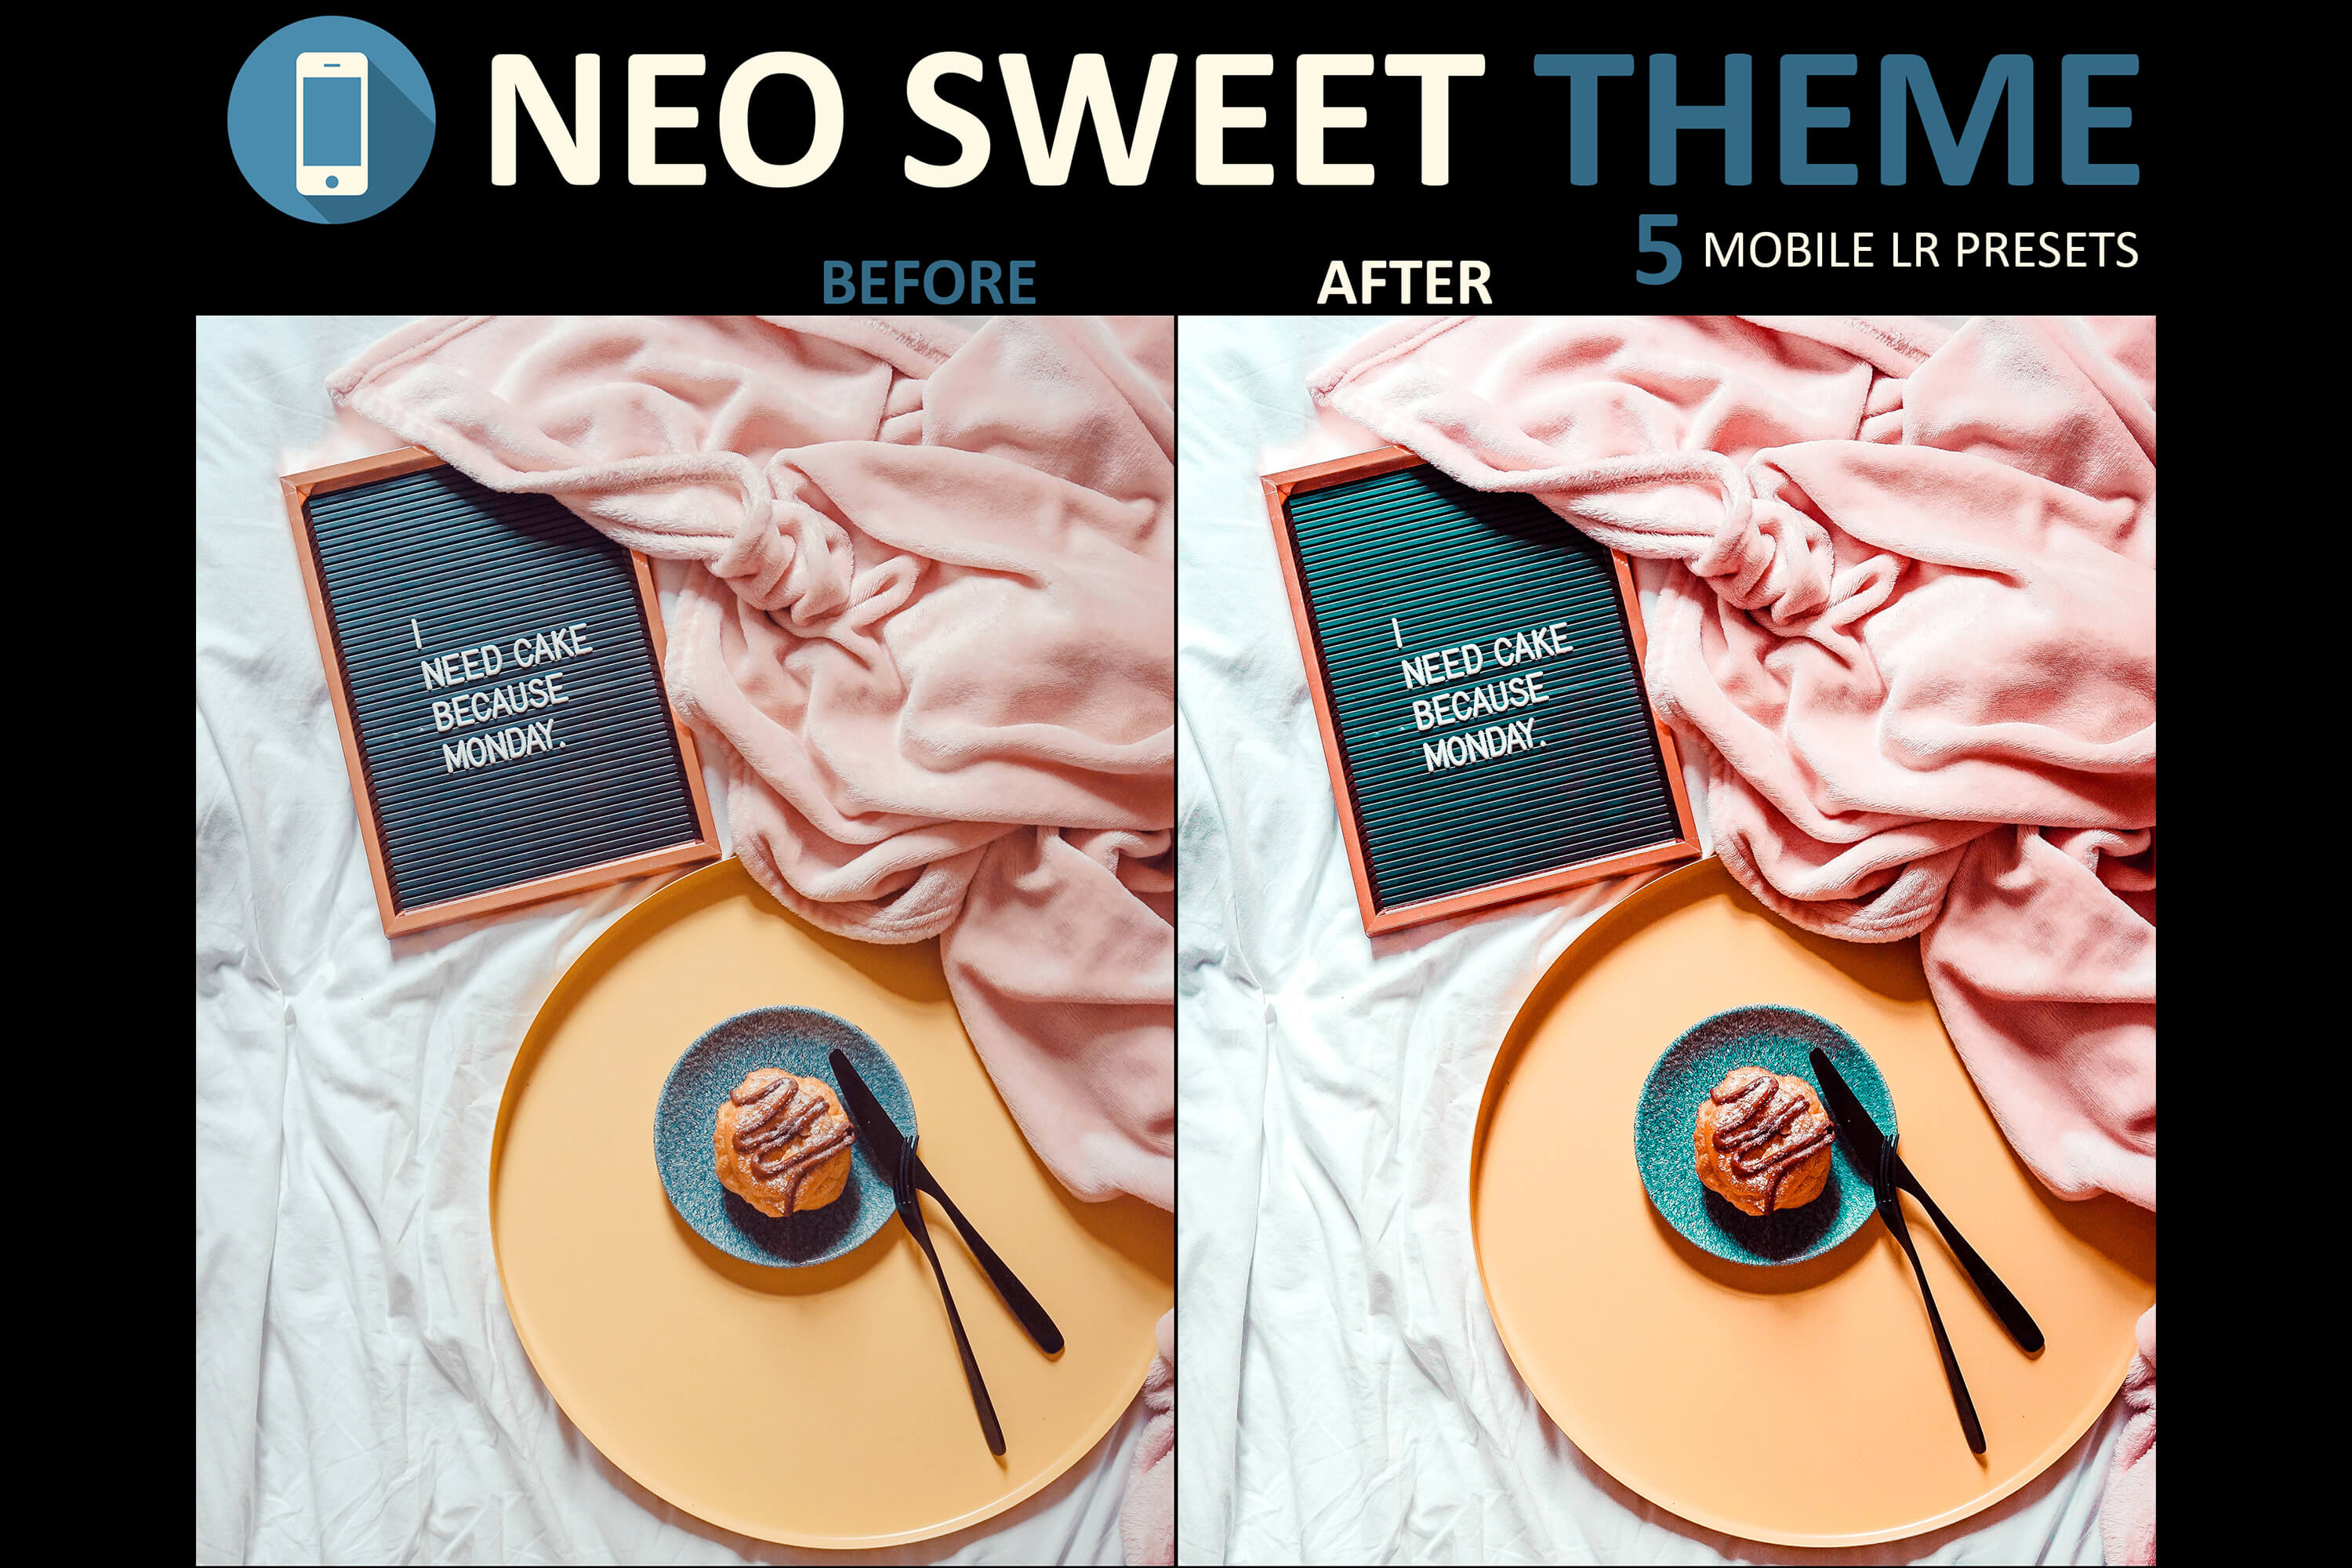 neo sweet theme mobile presets